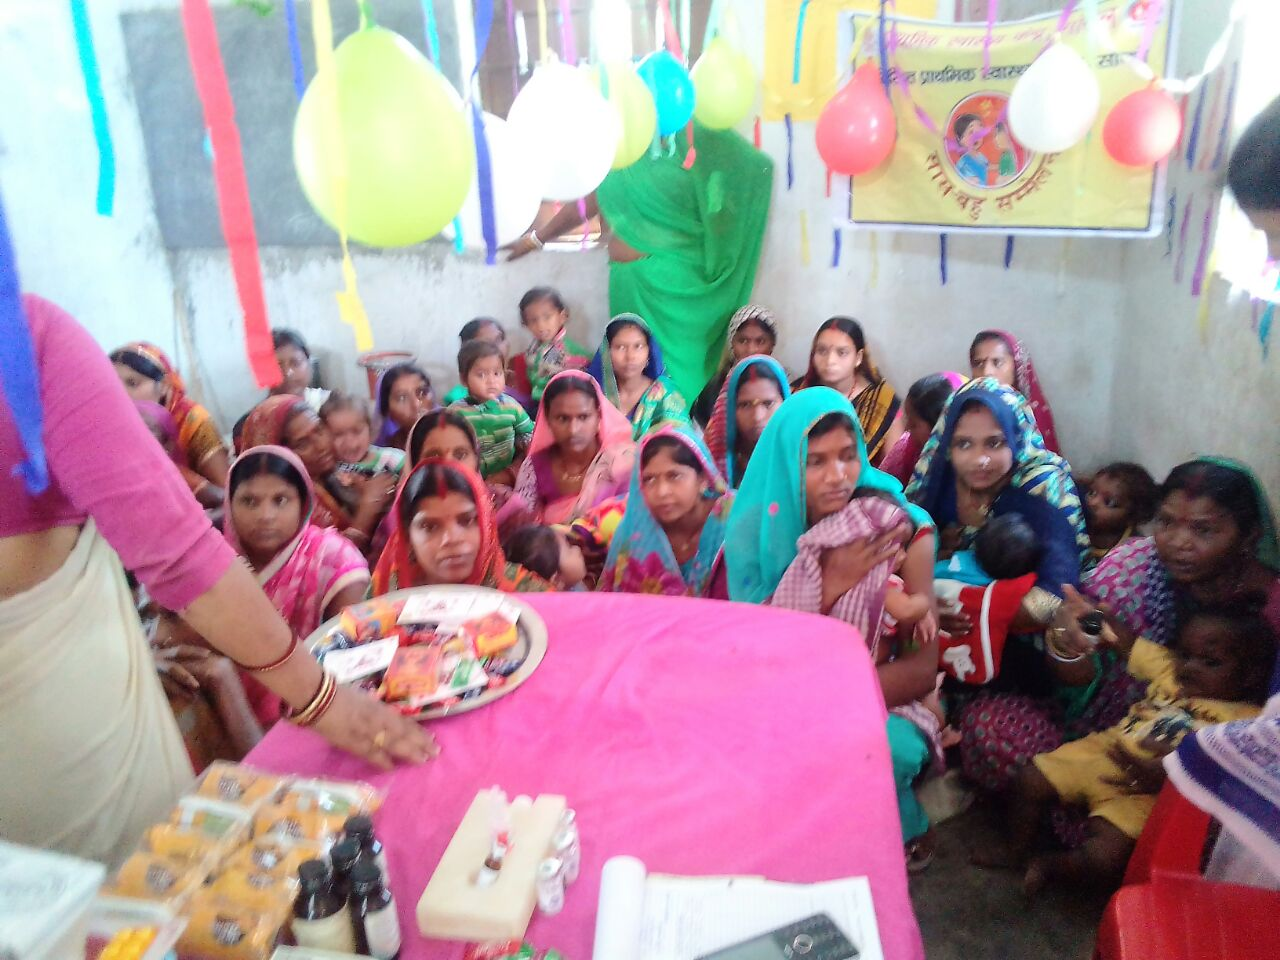 Another district in Bihar successfully holds Saas Bahu Sammelan – this time in Nawada.